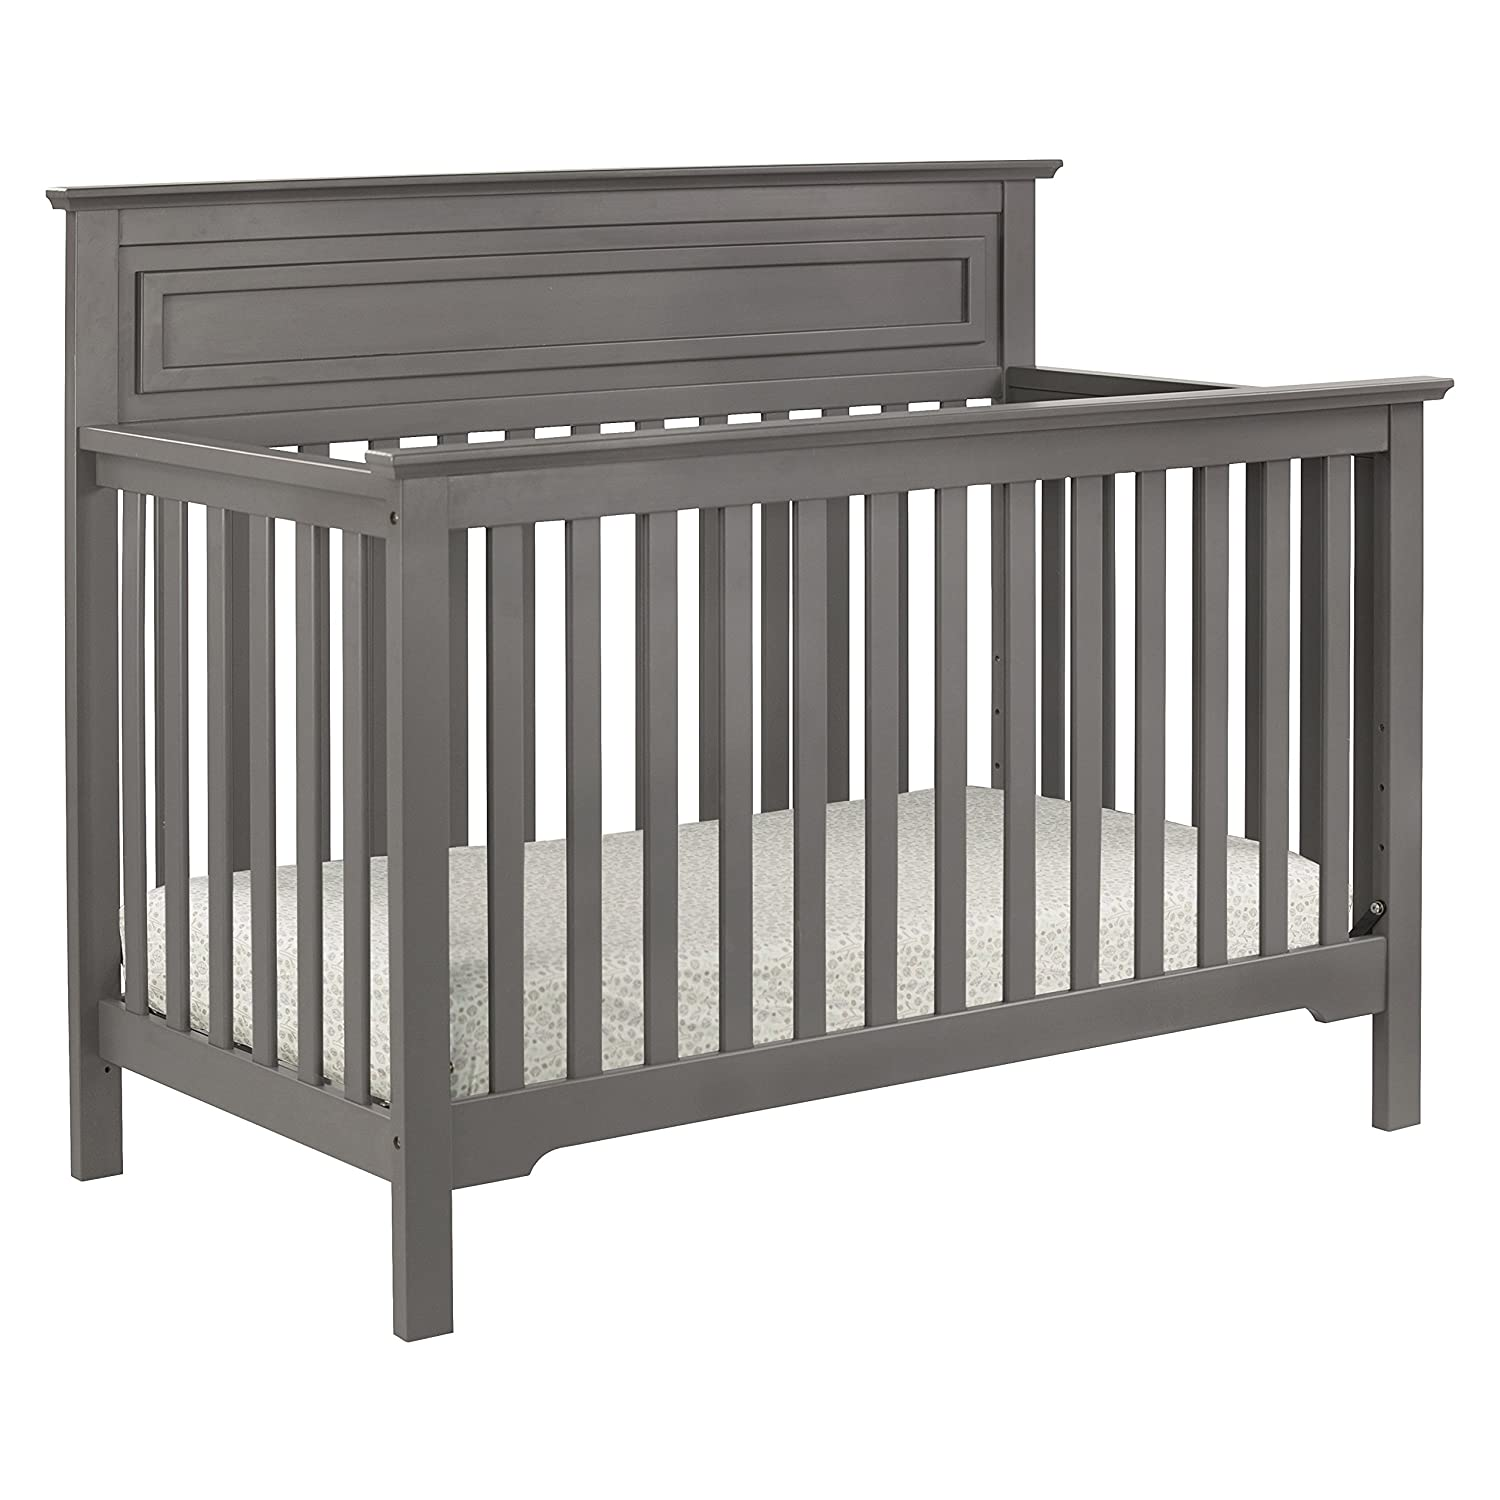 crib cribs stripes rug stylish room the elegant placed nursery area and in sleigh with unfinished